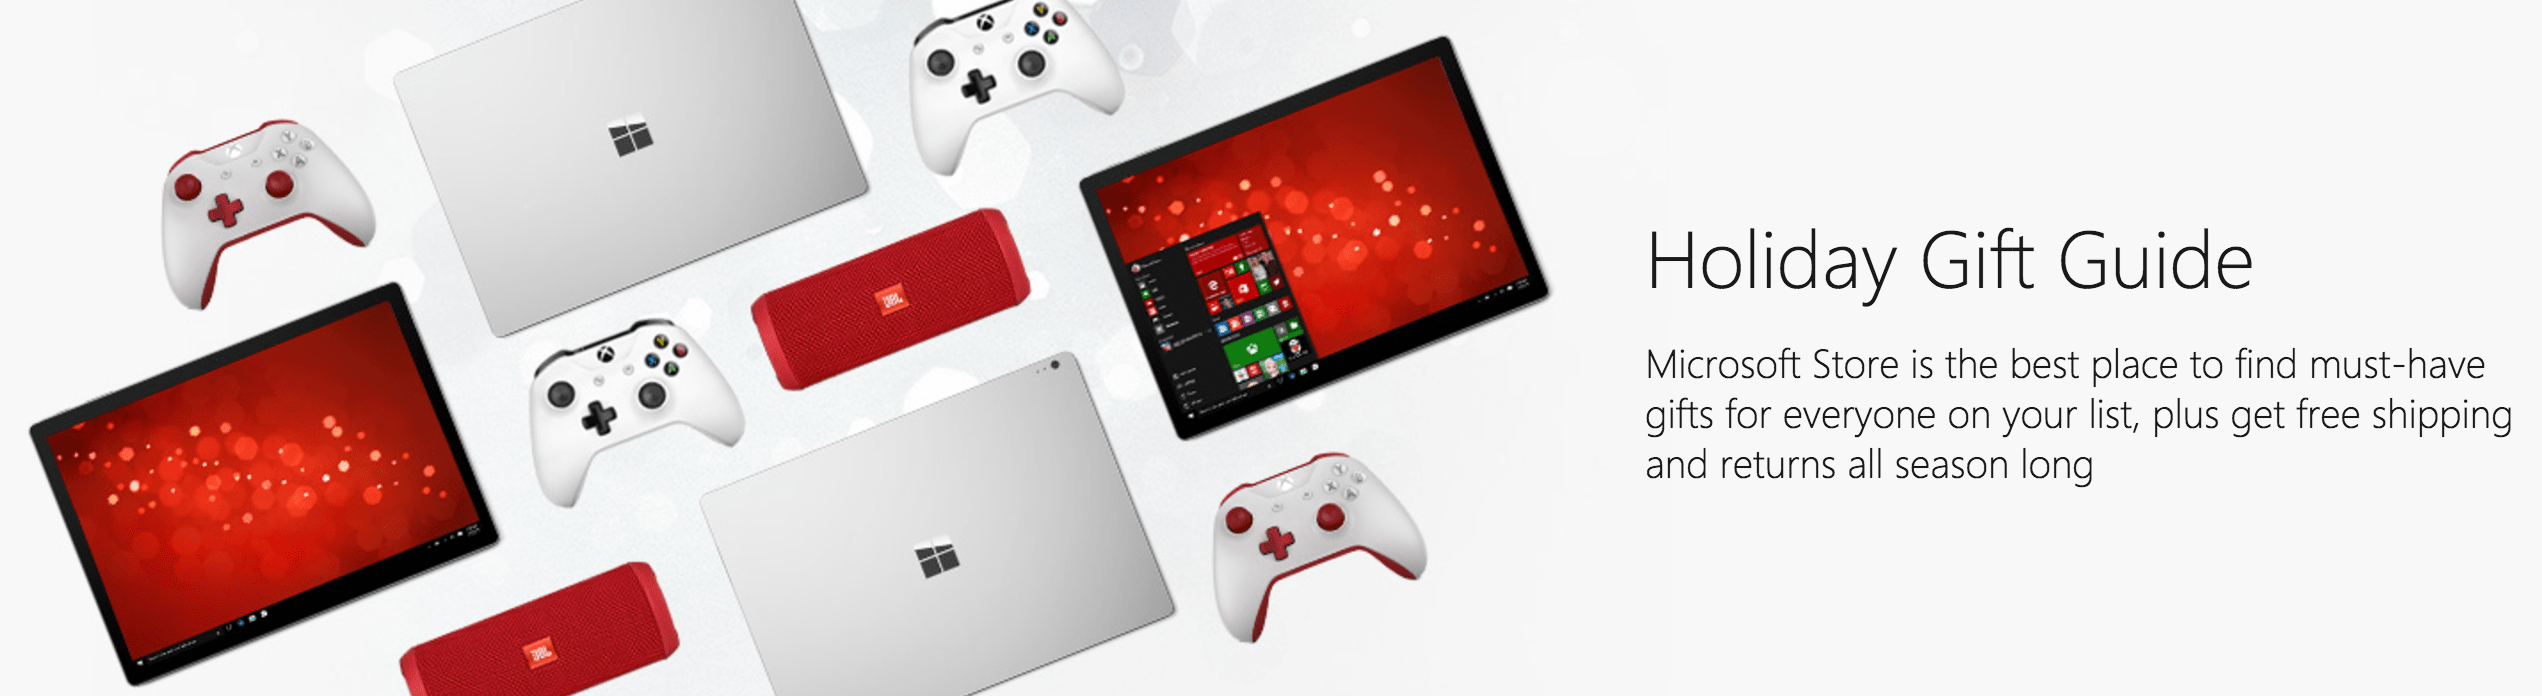 Microsoft Canada Holiday Gifts Savings: Xbox Game Deals + Gifts Under $100 + Save $129 Off Surface Pro 4 Bundle + FREE Shipping